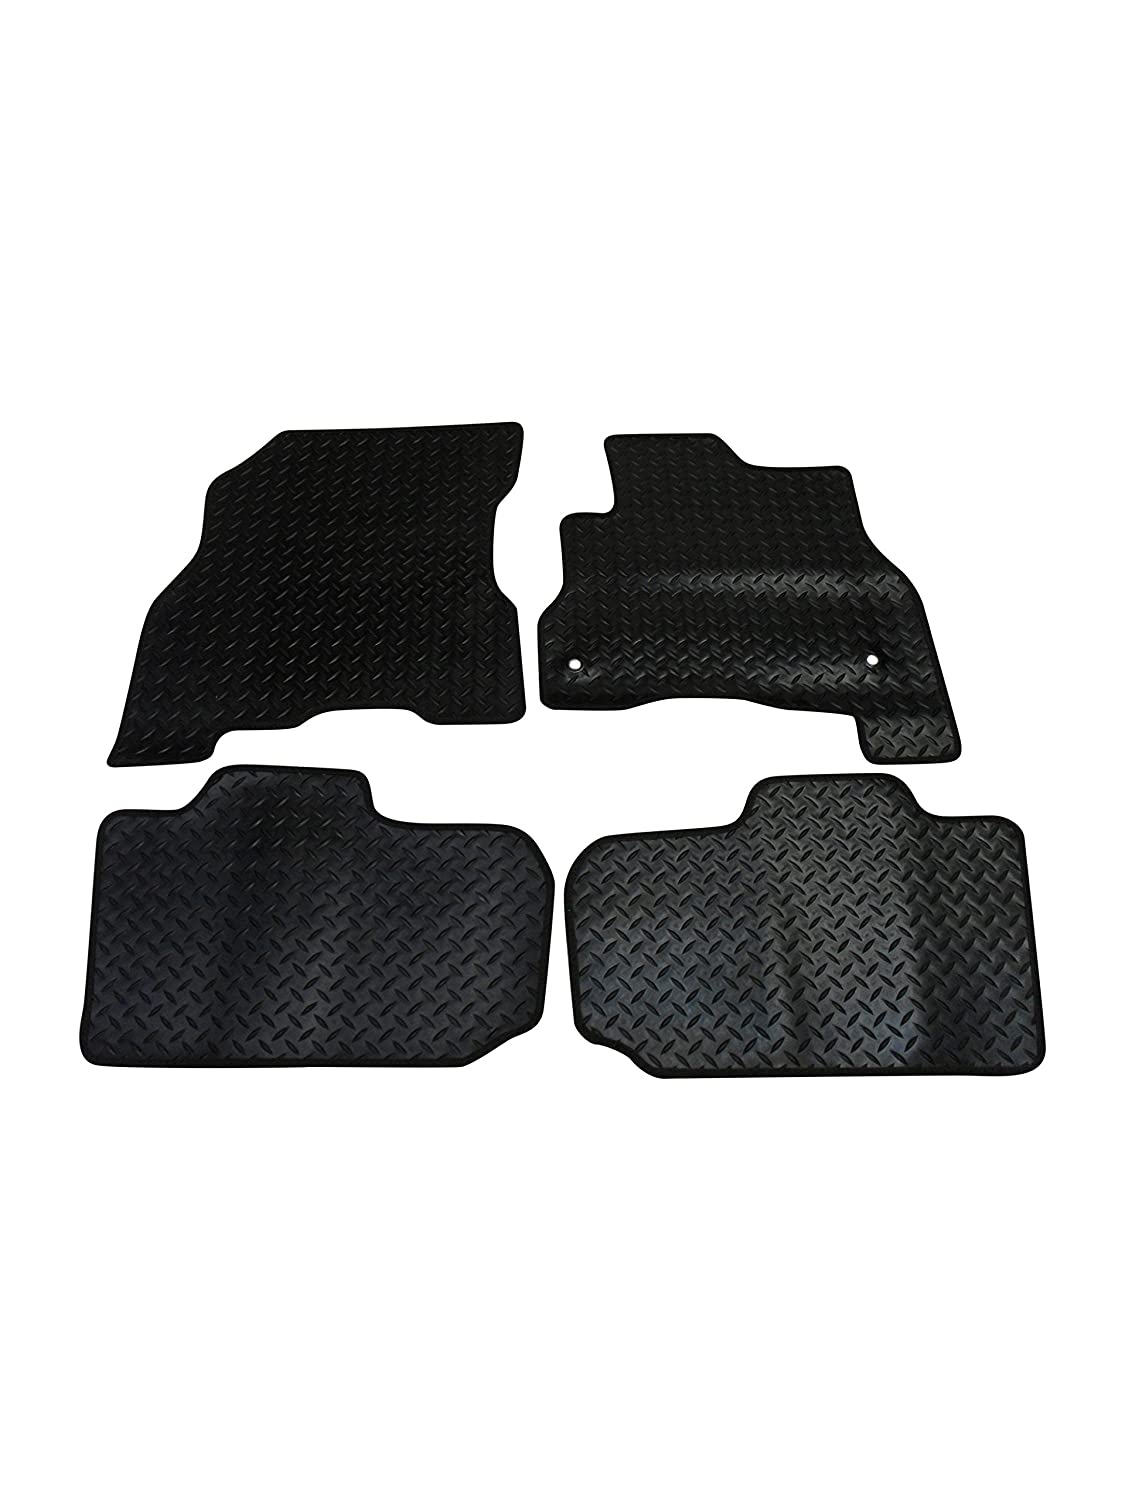 Fully Tailored Deluxe Rubber Car Mats in Black